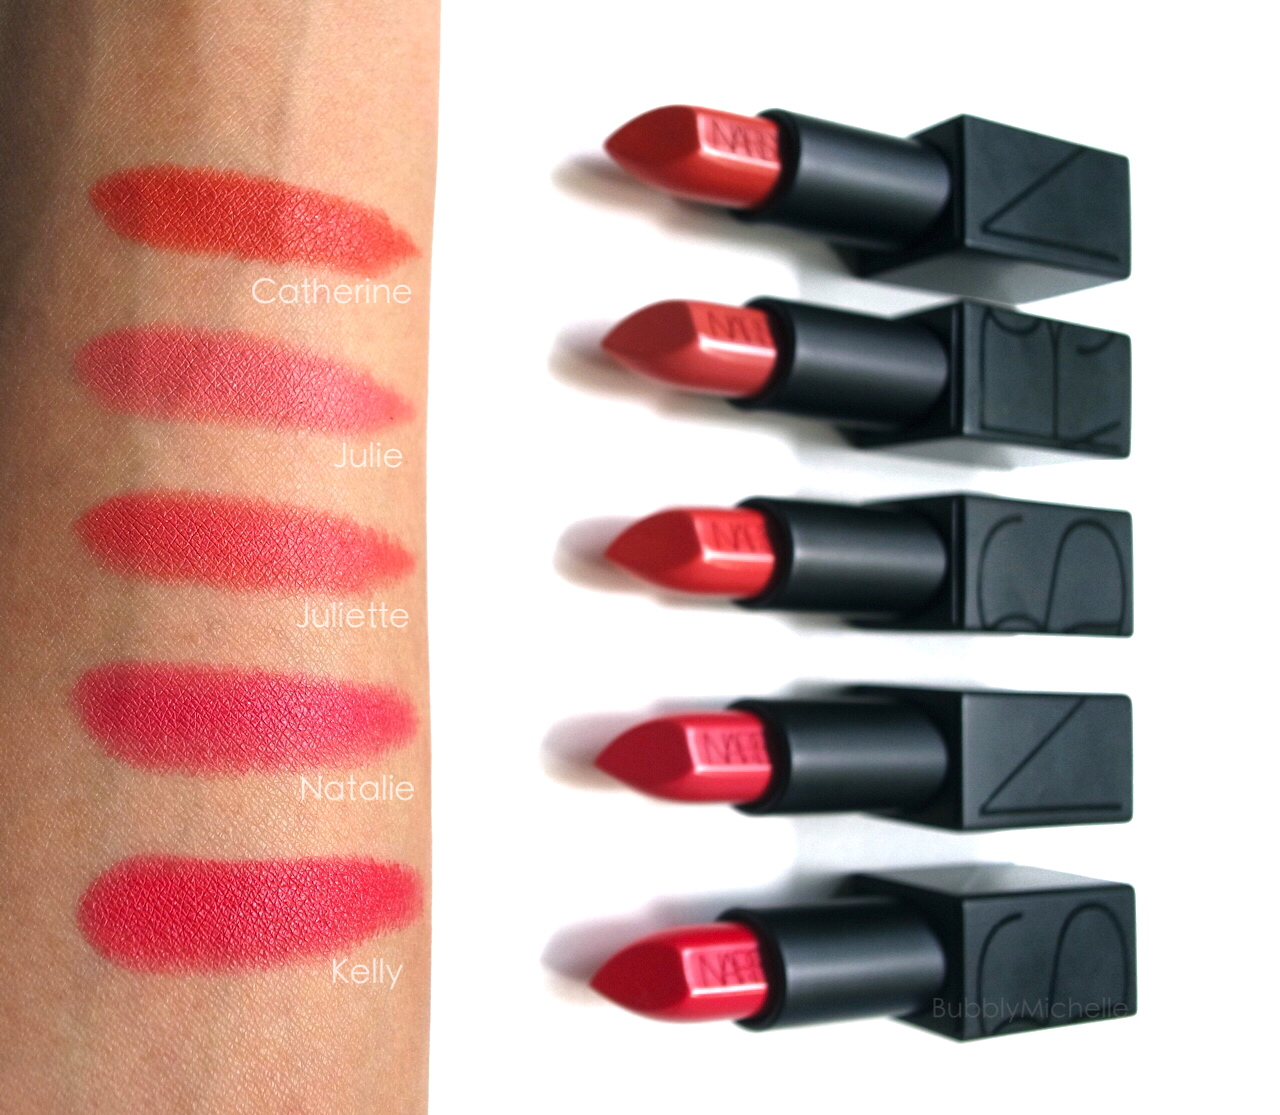 Extrêmement NARS Audacious lipstick swatches PART 2 – Bubbly Michelle LB35